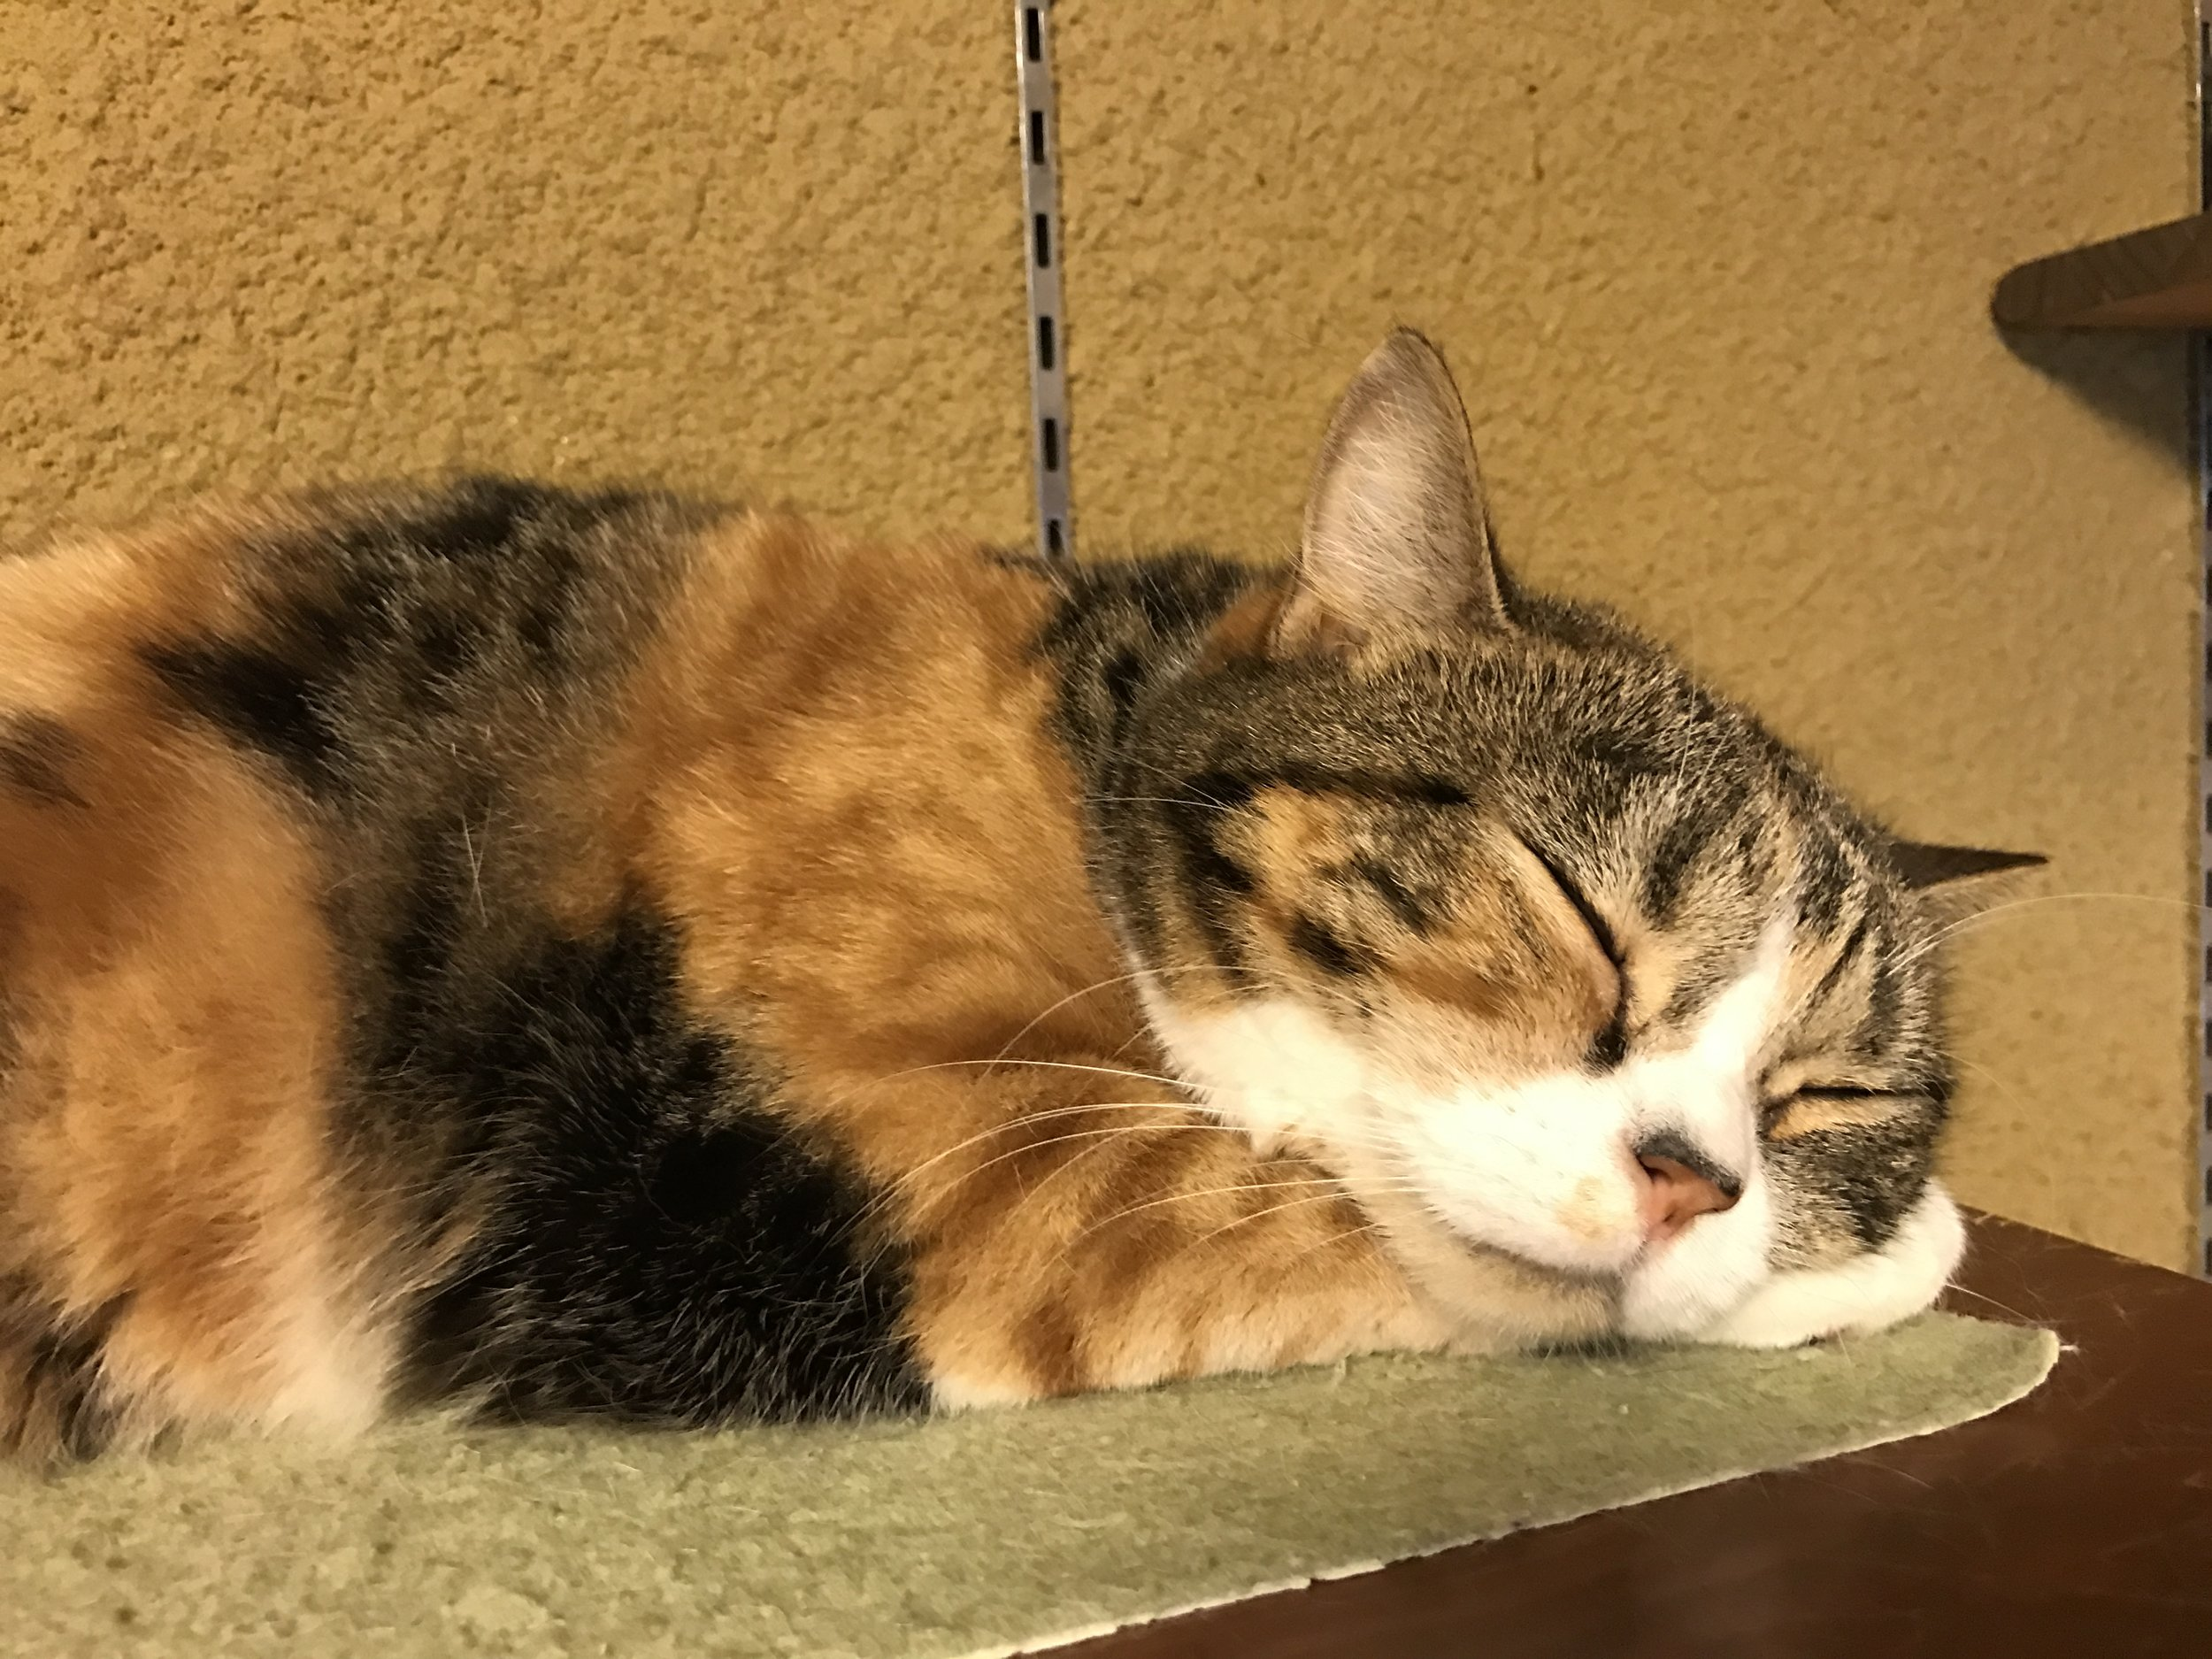 Located in the Kita neighborhood, there are a wide variety of cats in residence at Neko no Jikan